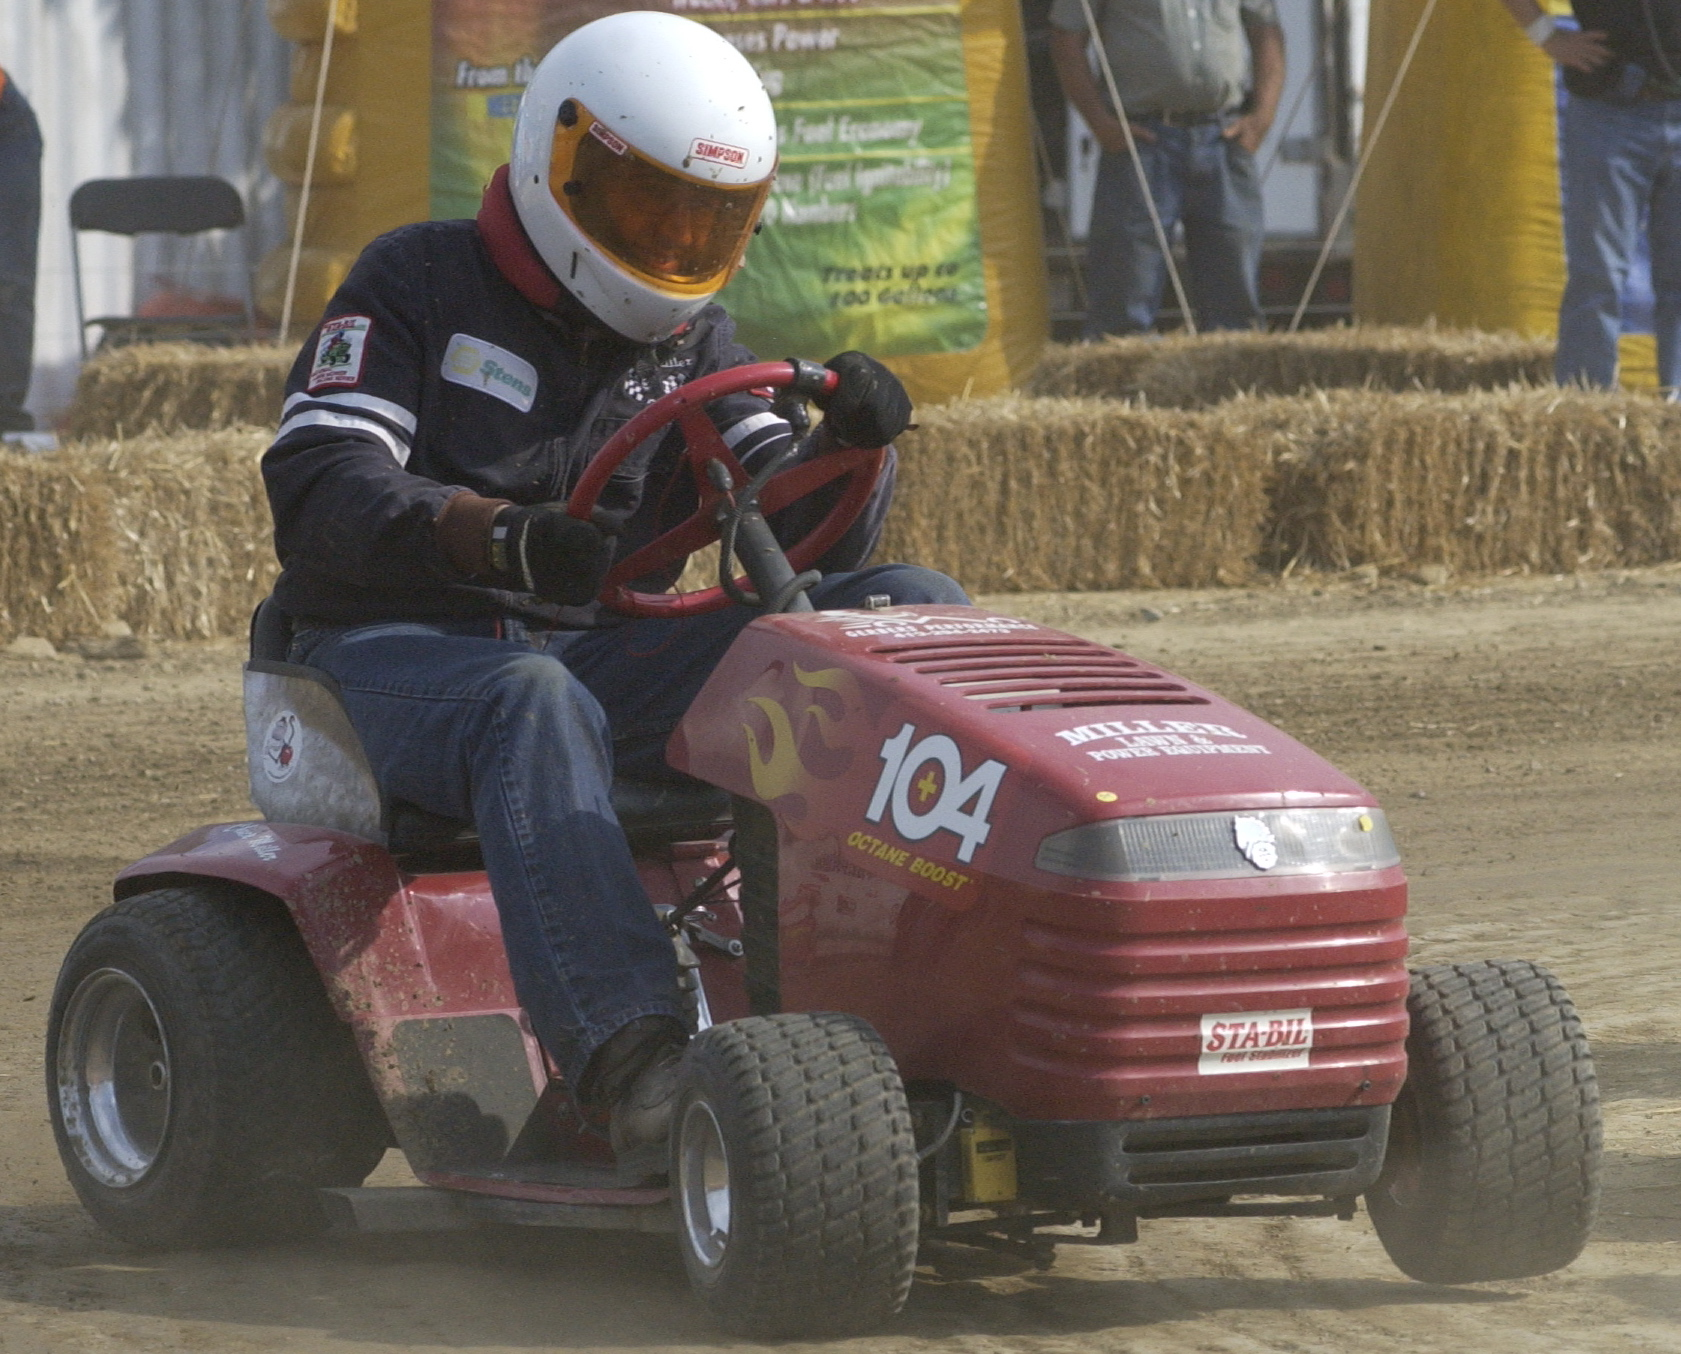 Lawn Mower Racing >> Gold Eagle's Engine Answerman Powers World's Fastest Lawn Mower to Maryland for STA-BIL National ...